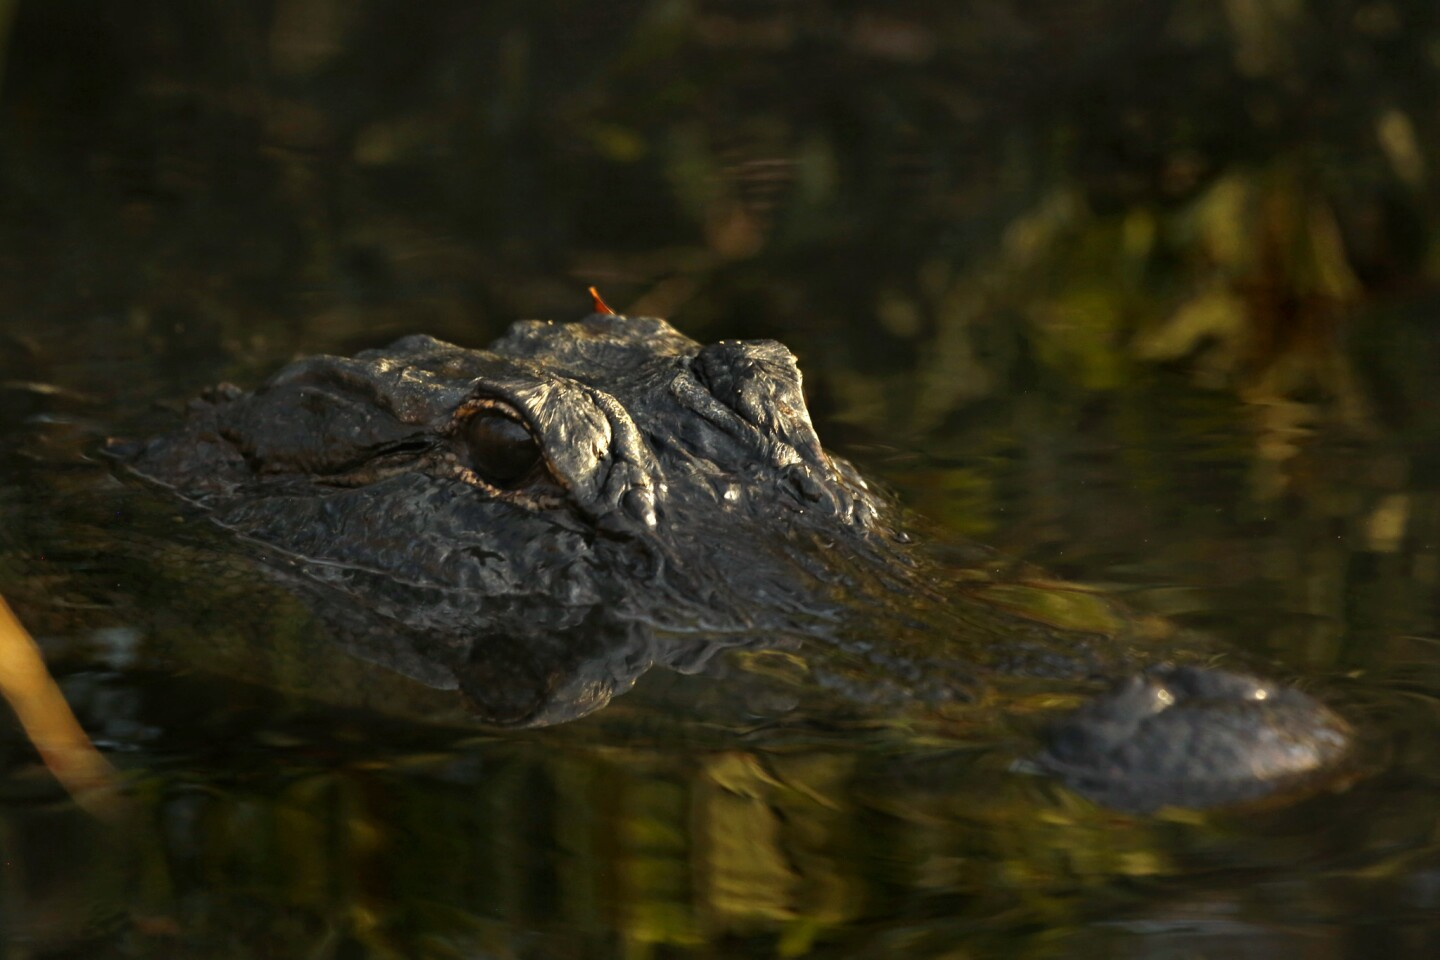 An American alligator in the Florida Everglades.